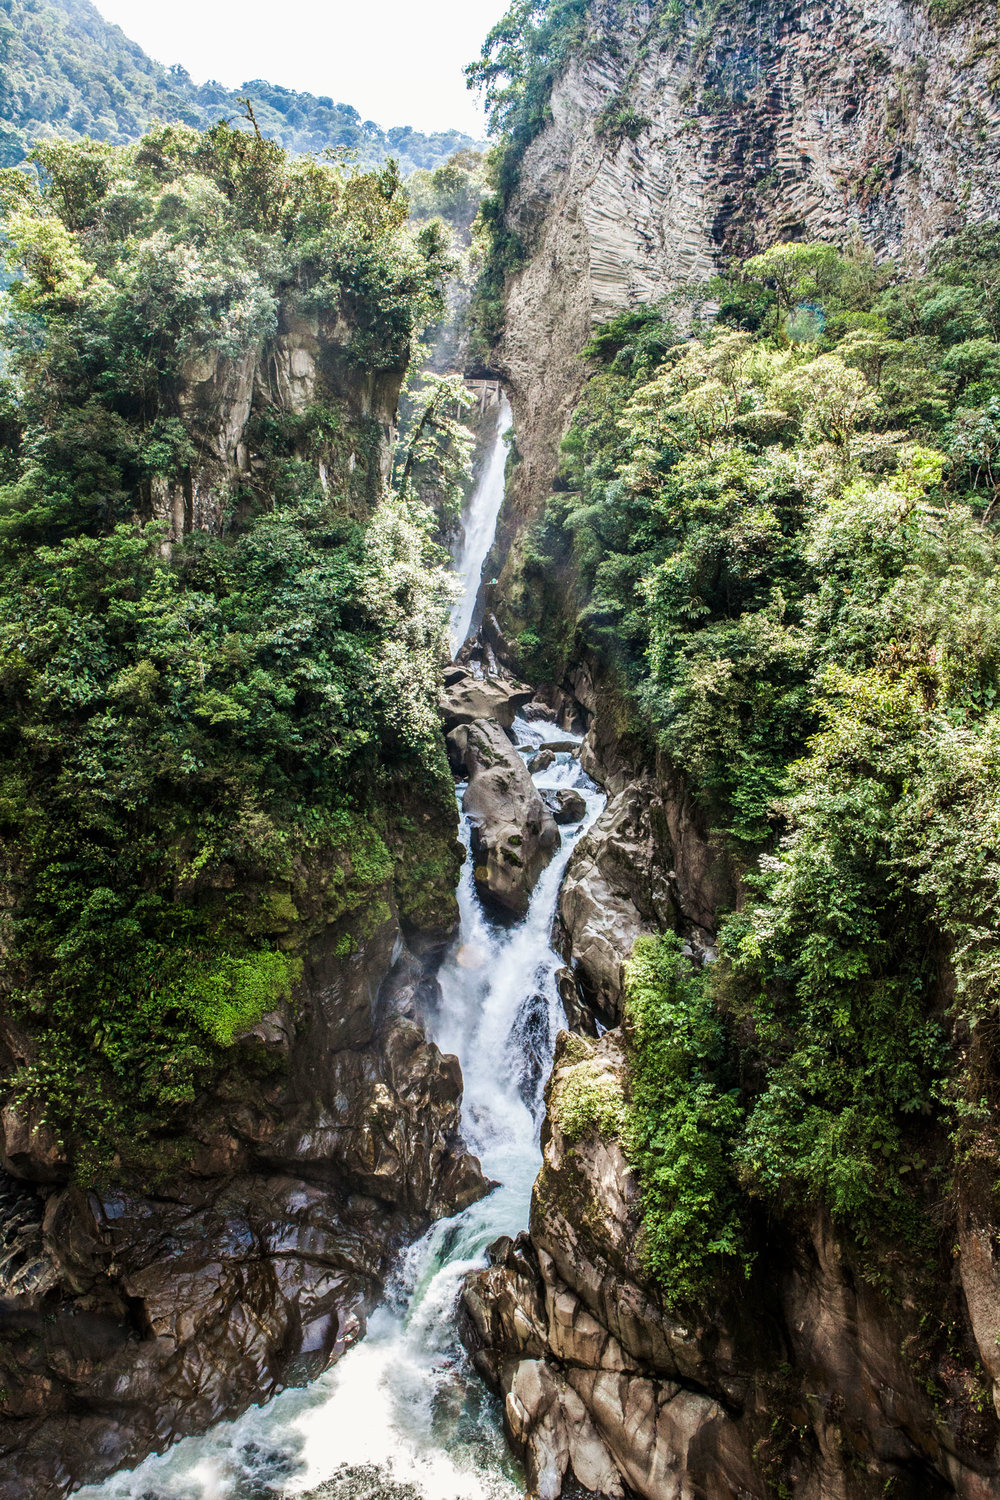 waterfall-banos-ecuador-wander-south-devils-throat-.jpg